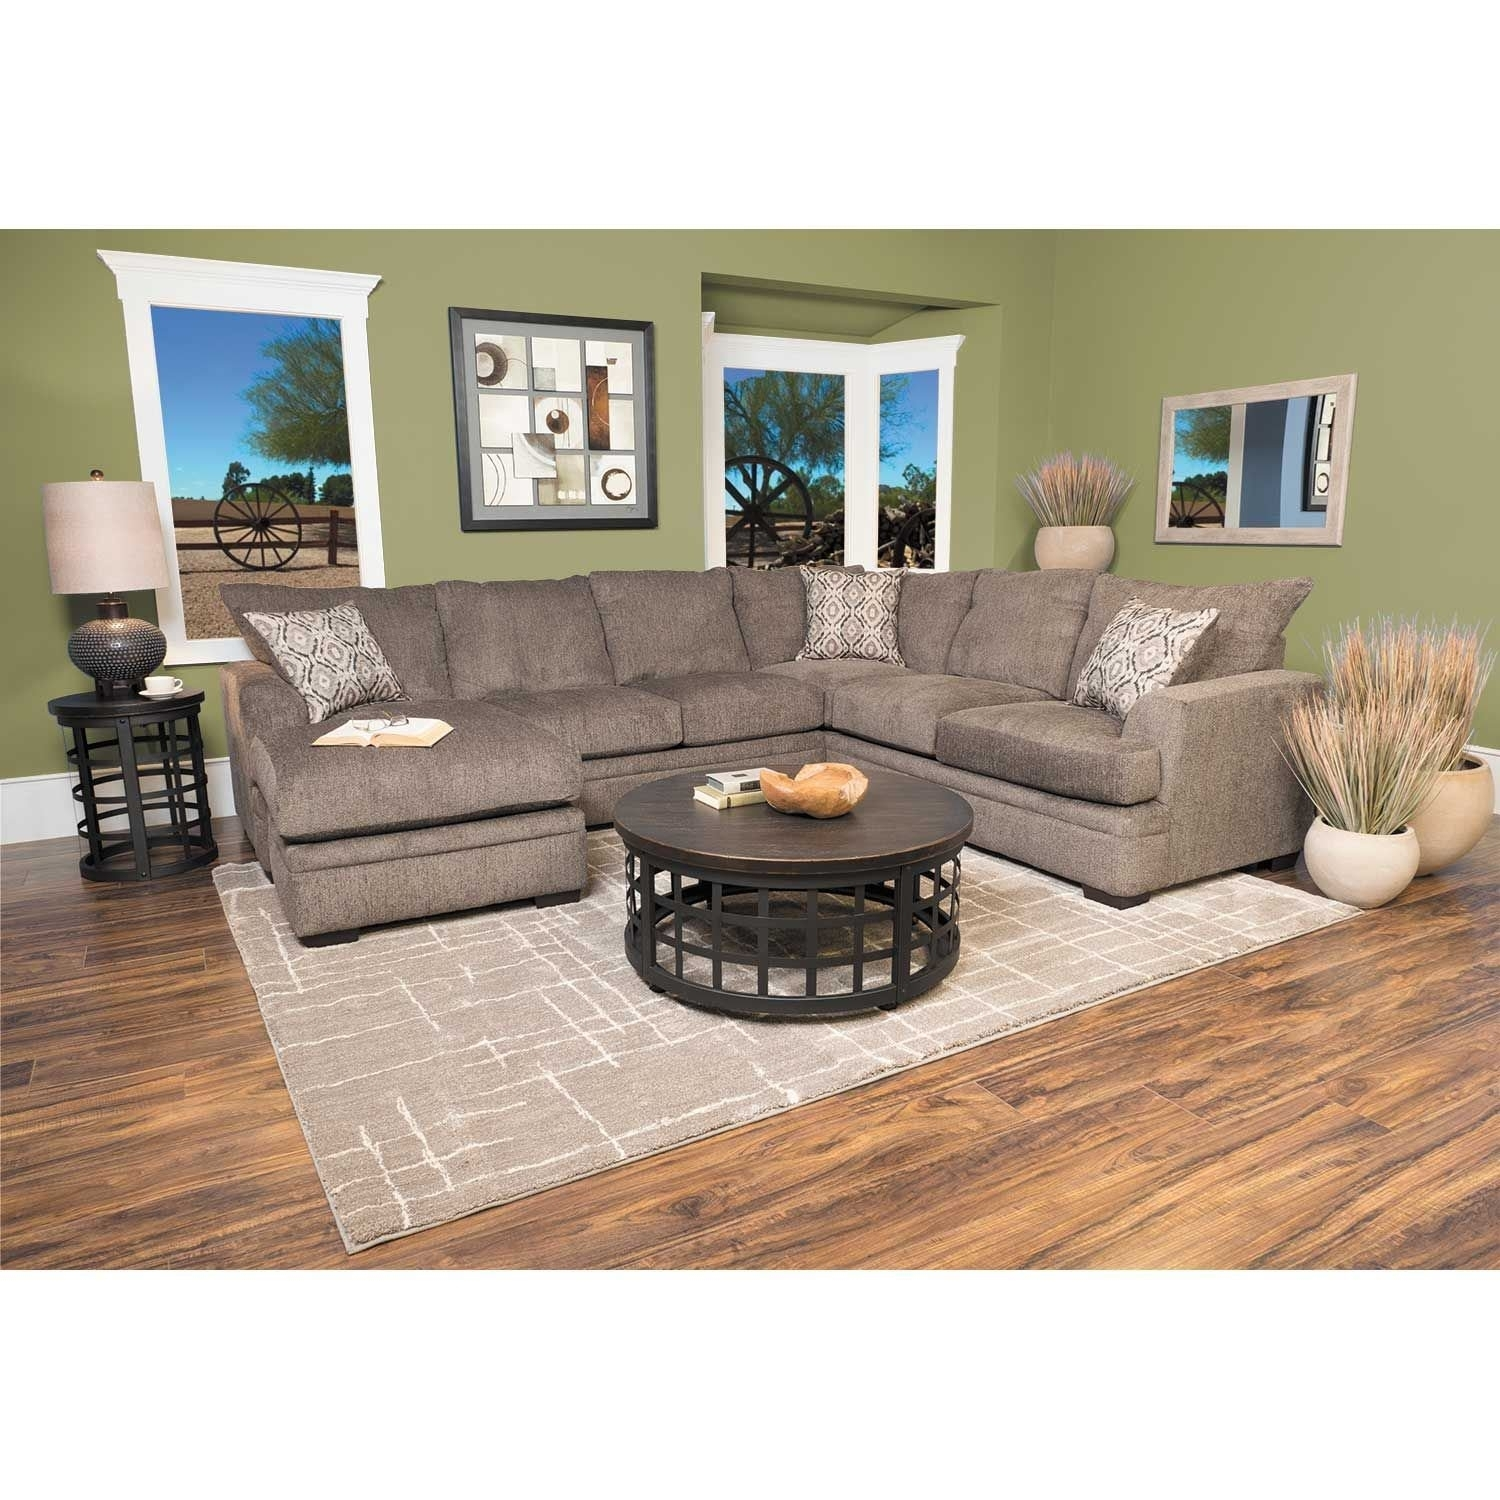 2Pc Pewter Raf Sectional W/chaise C2 68Rc 2Pc | Afw | Afw For Evan 2 Piece Sectionals With Raf Chaise (Image 1 of 25)